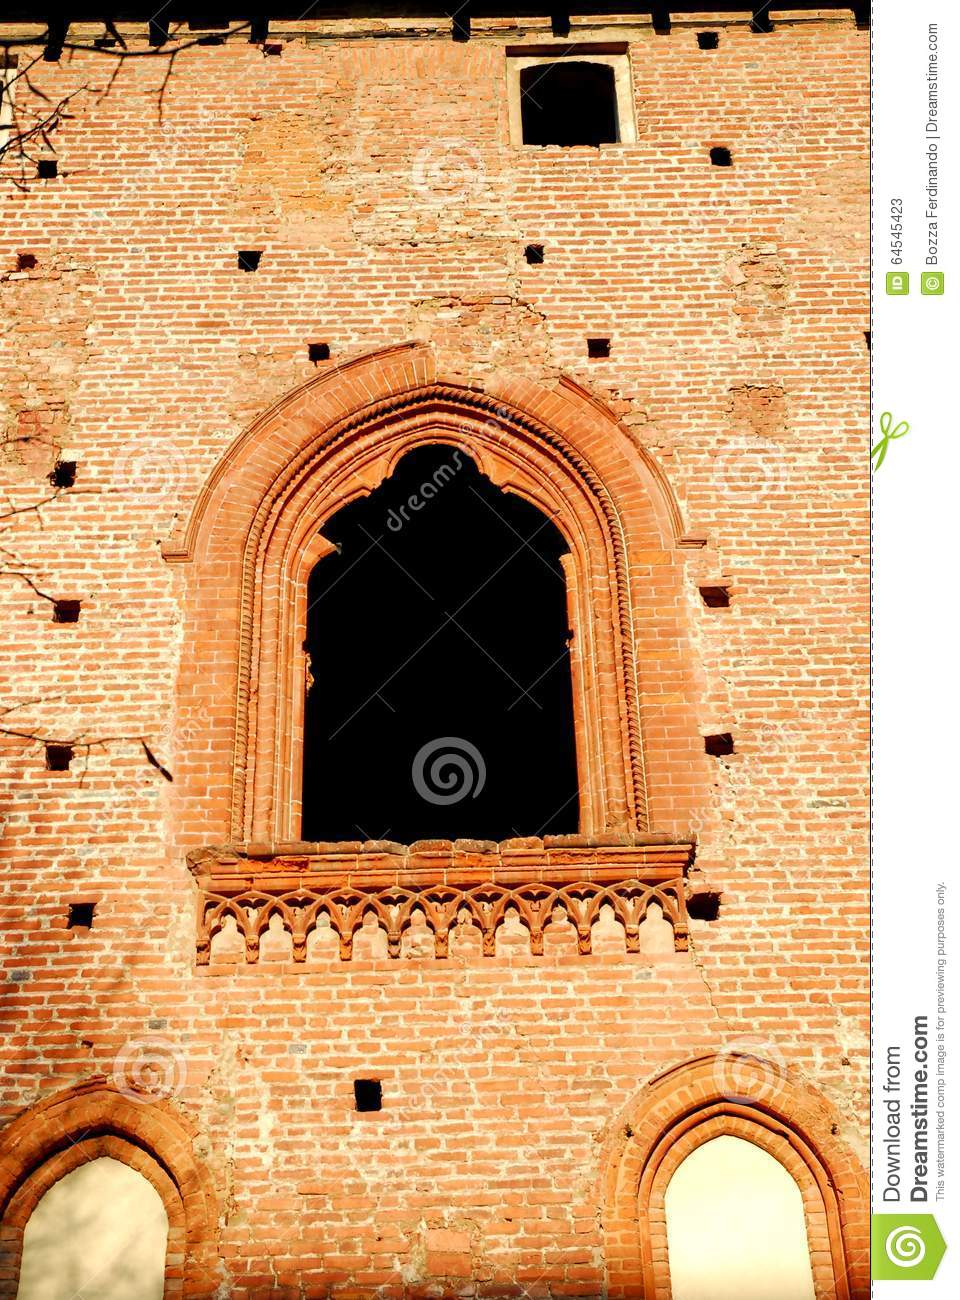 A wall with a window that looks like a painting in the castle of Vigevano near Pavia in Lombardy (Italy)